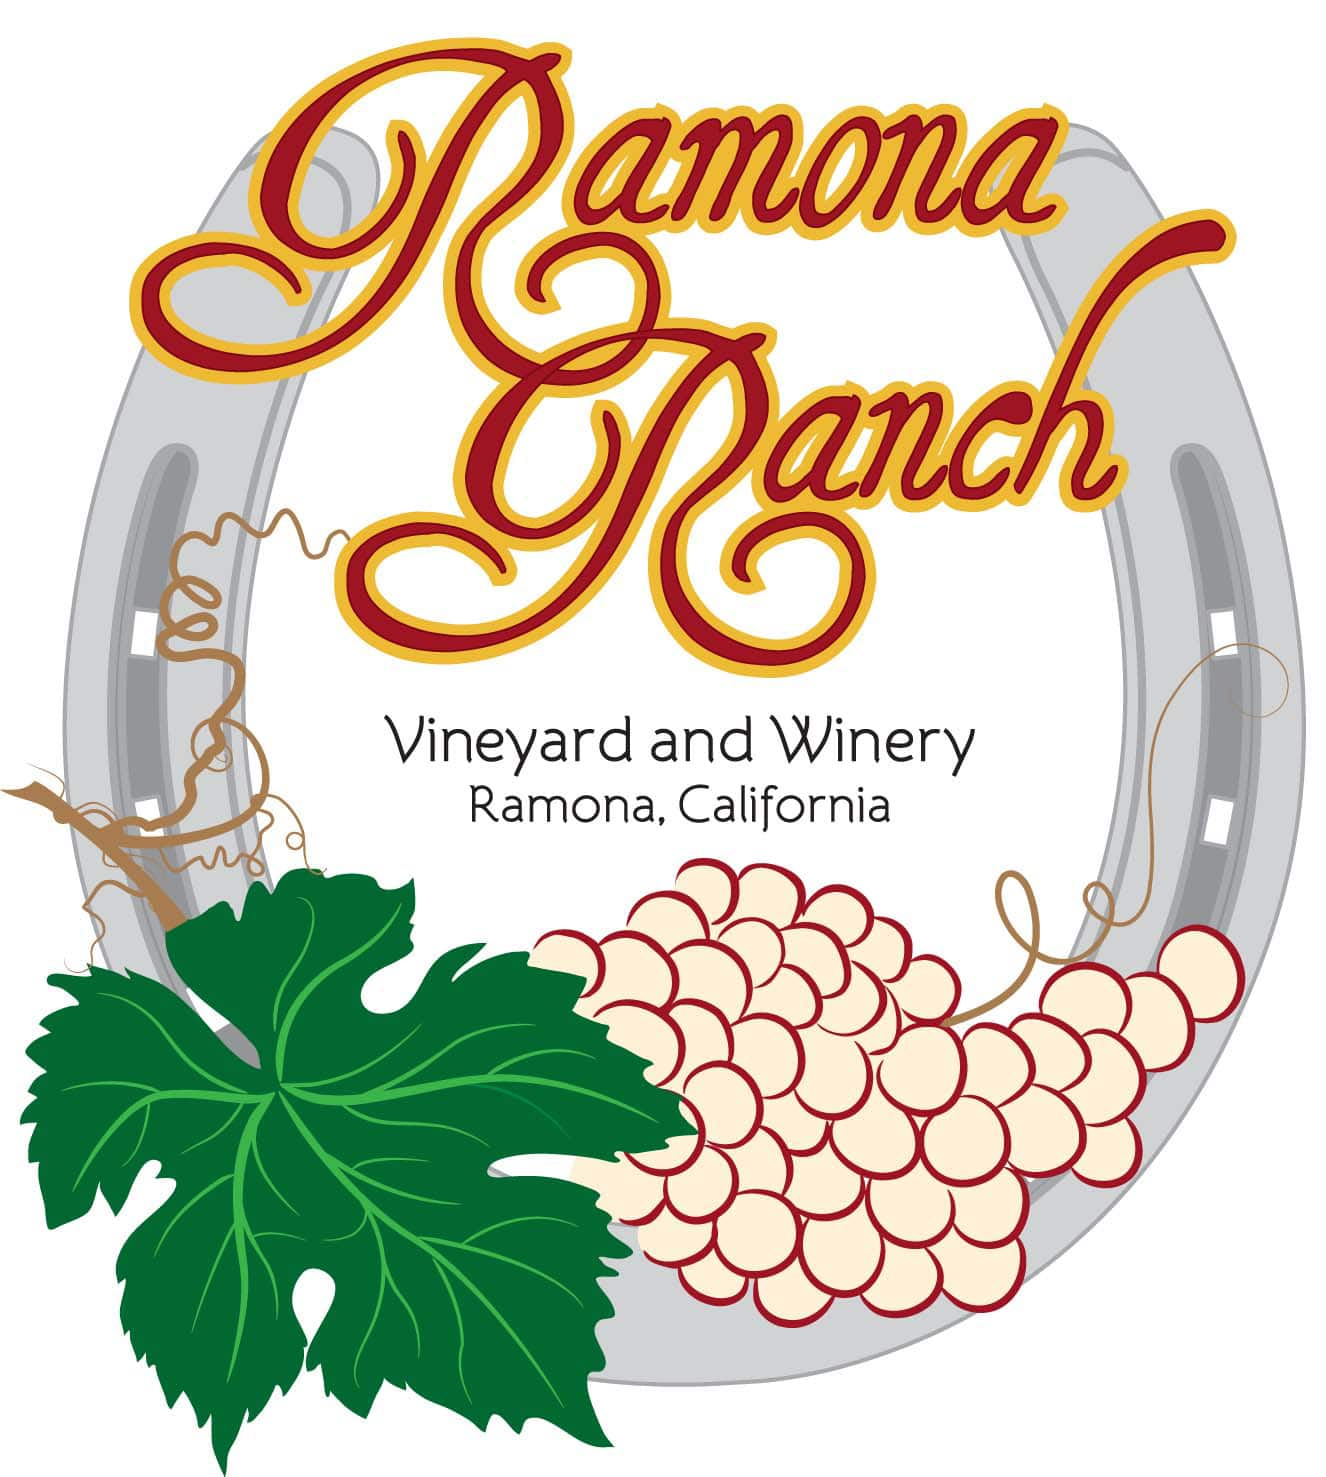 Ramona Ranch Winery